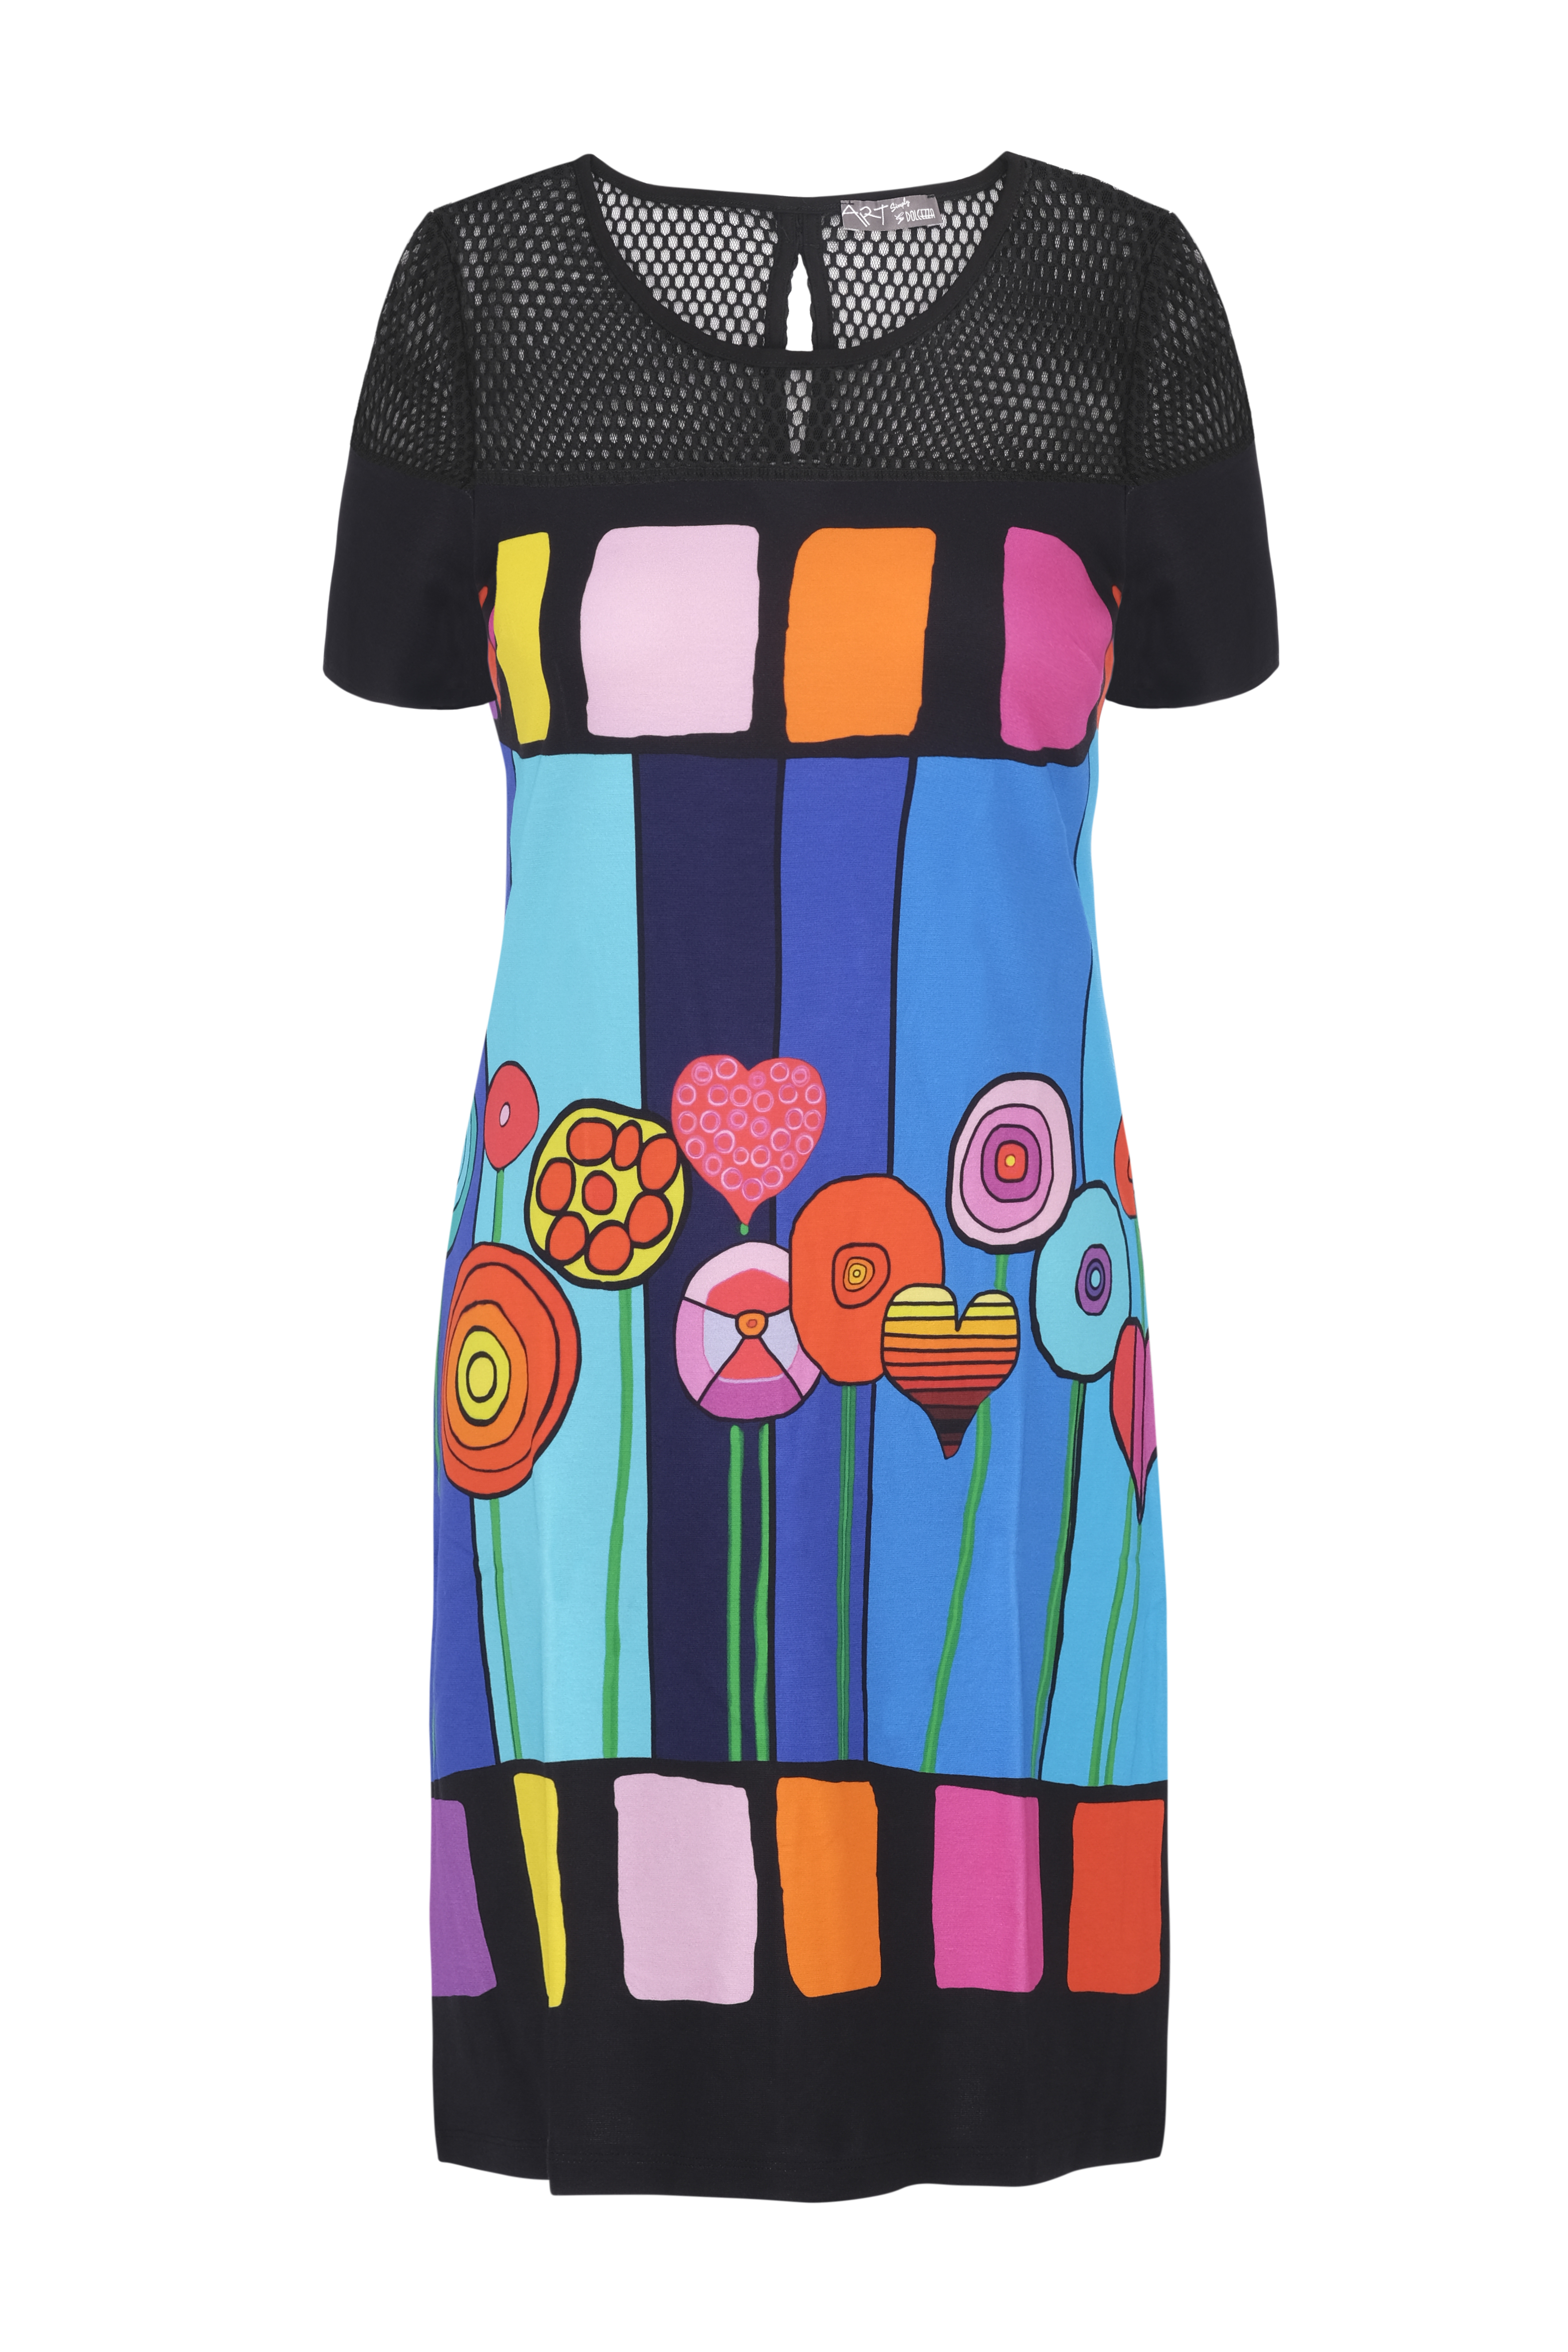 Simply Art Dolcezza: Lollipops Of Happiness Abstract Art Dress